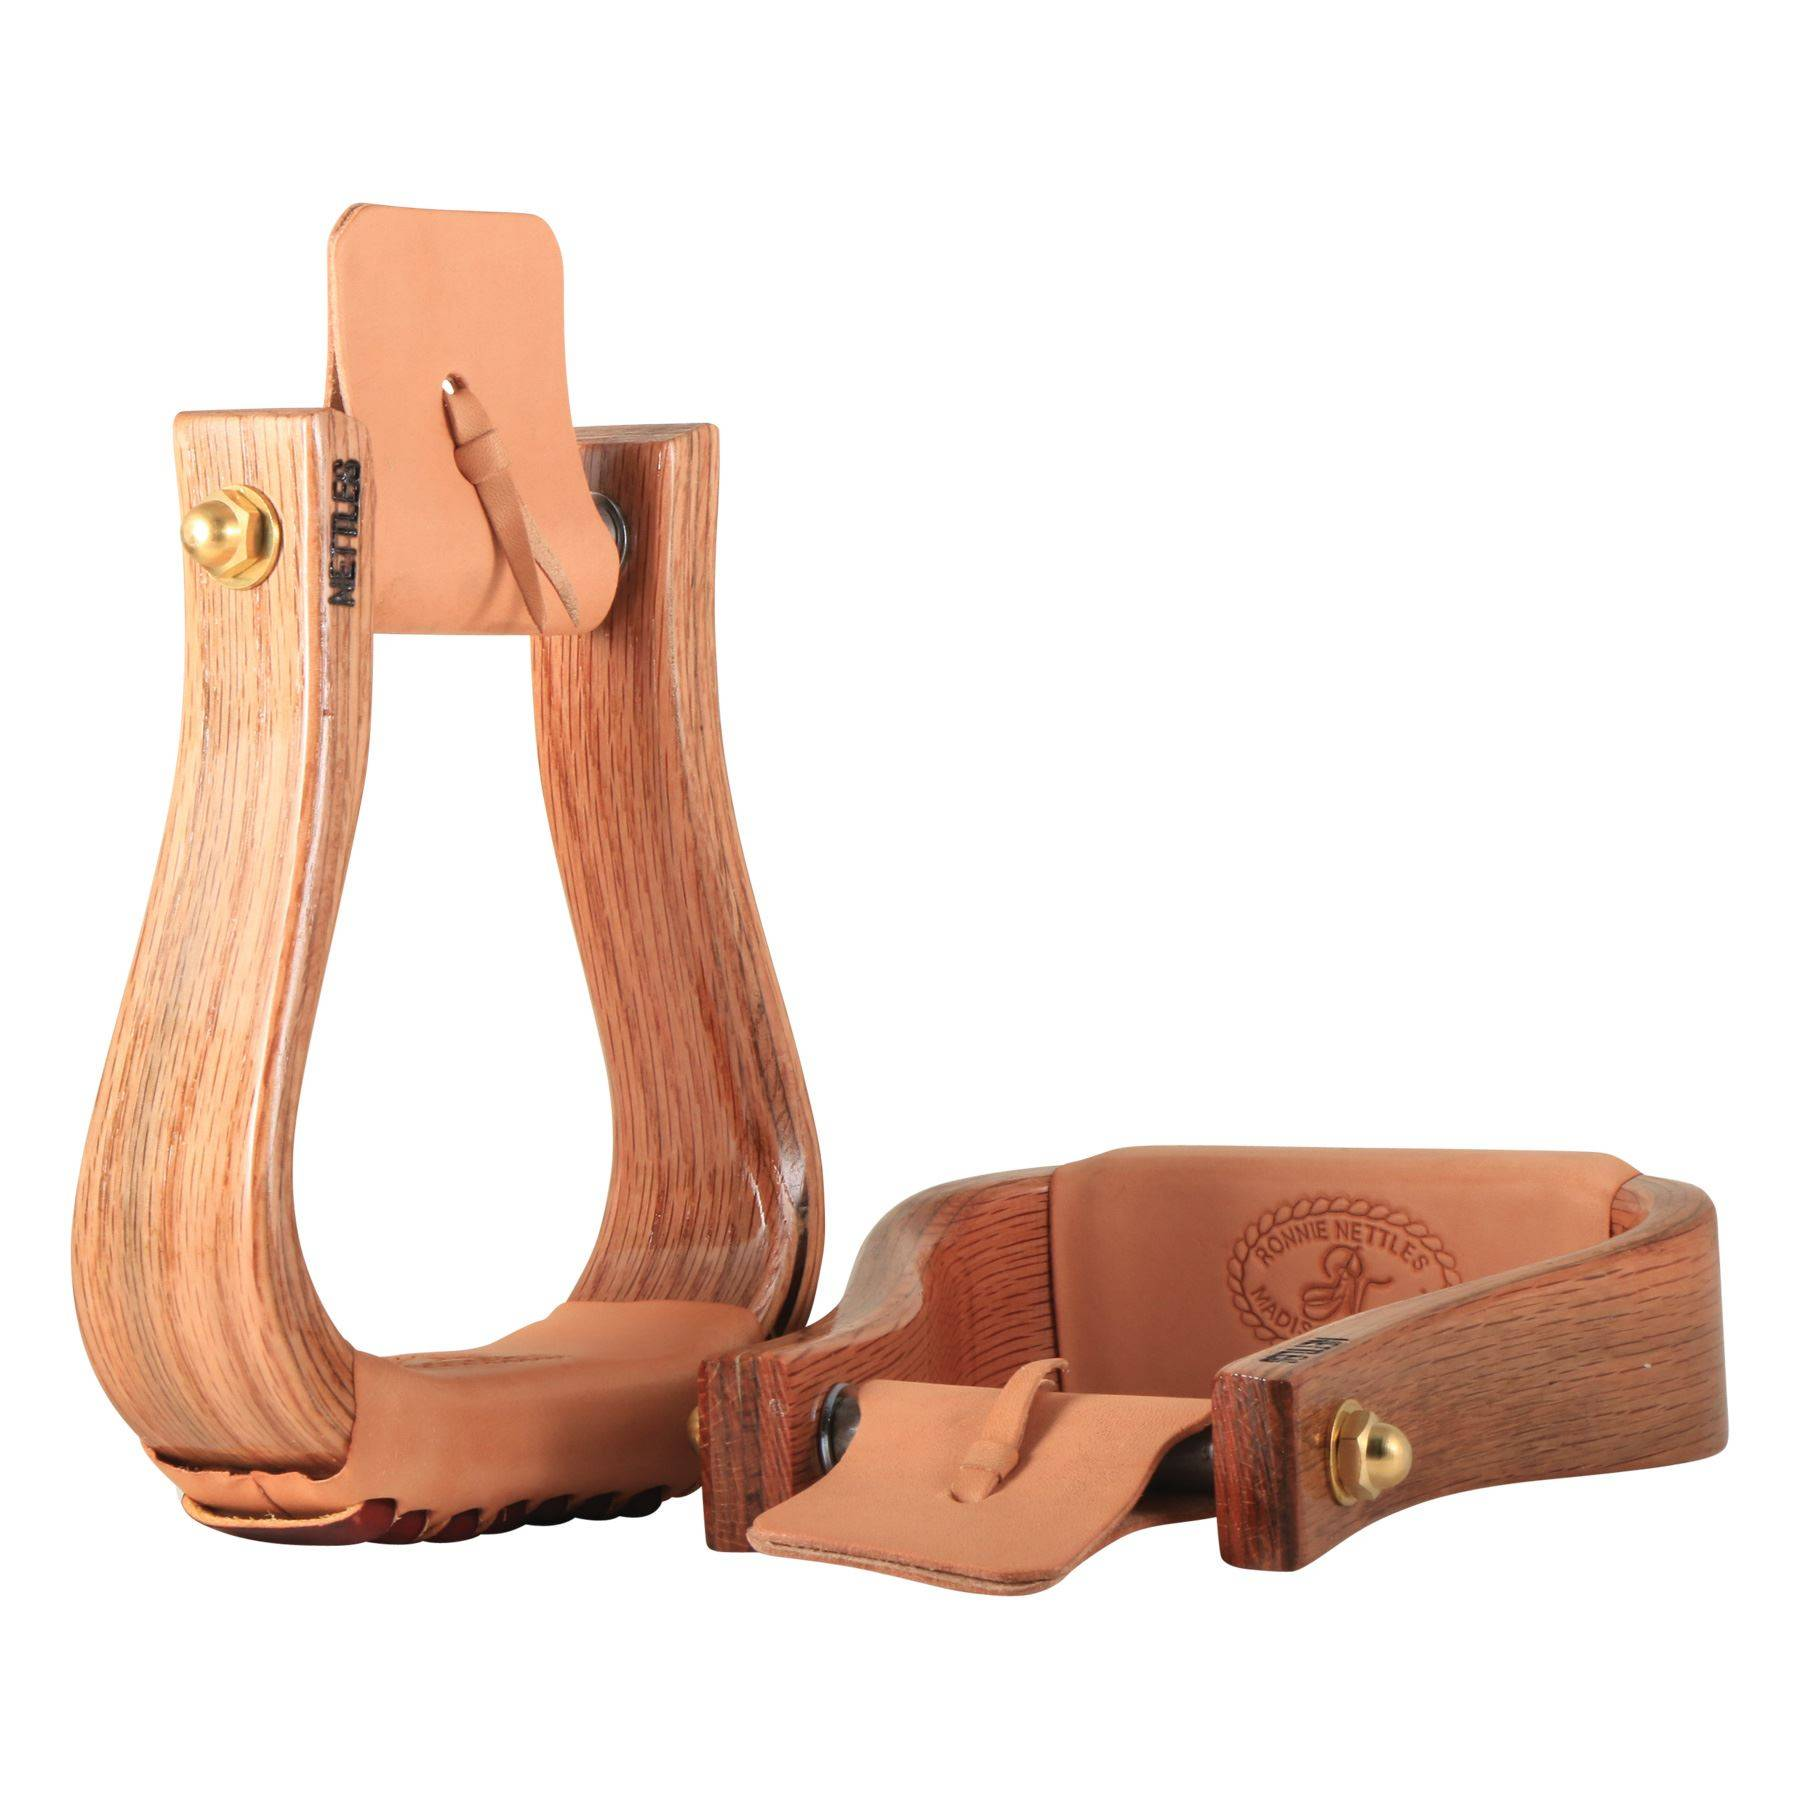 "Nettles 2"" Flatbottom Varnish Wooden Western Stirrups"